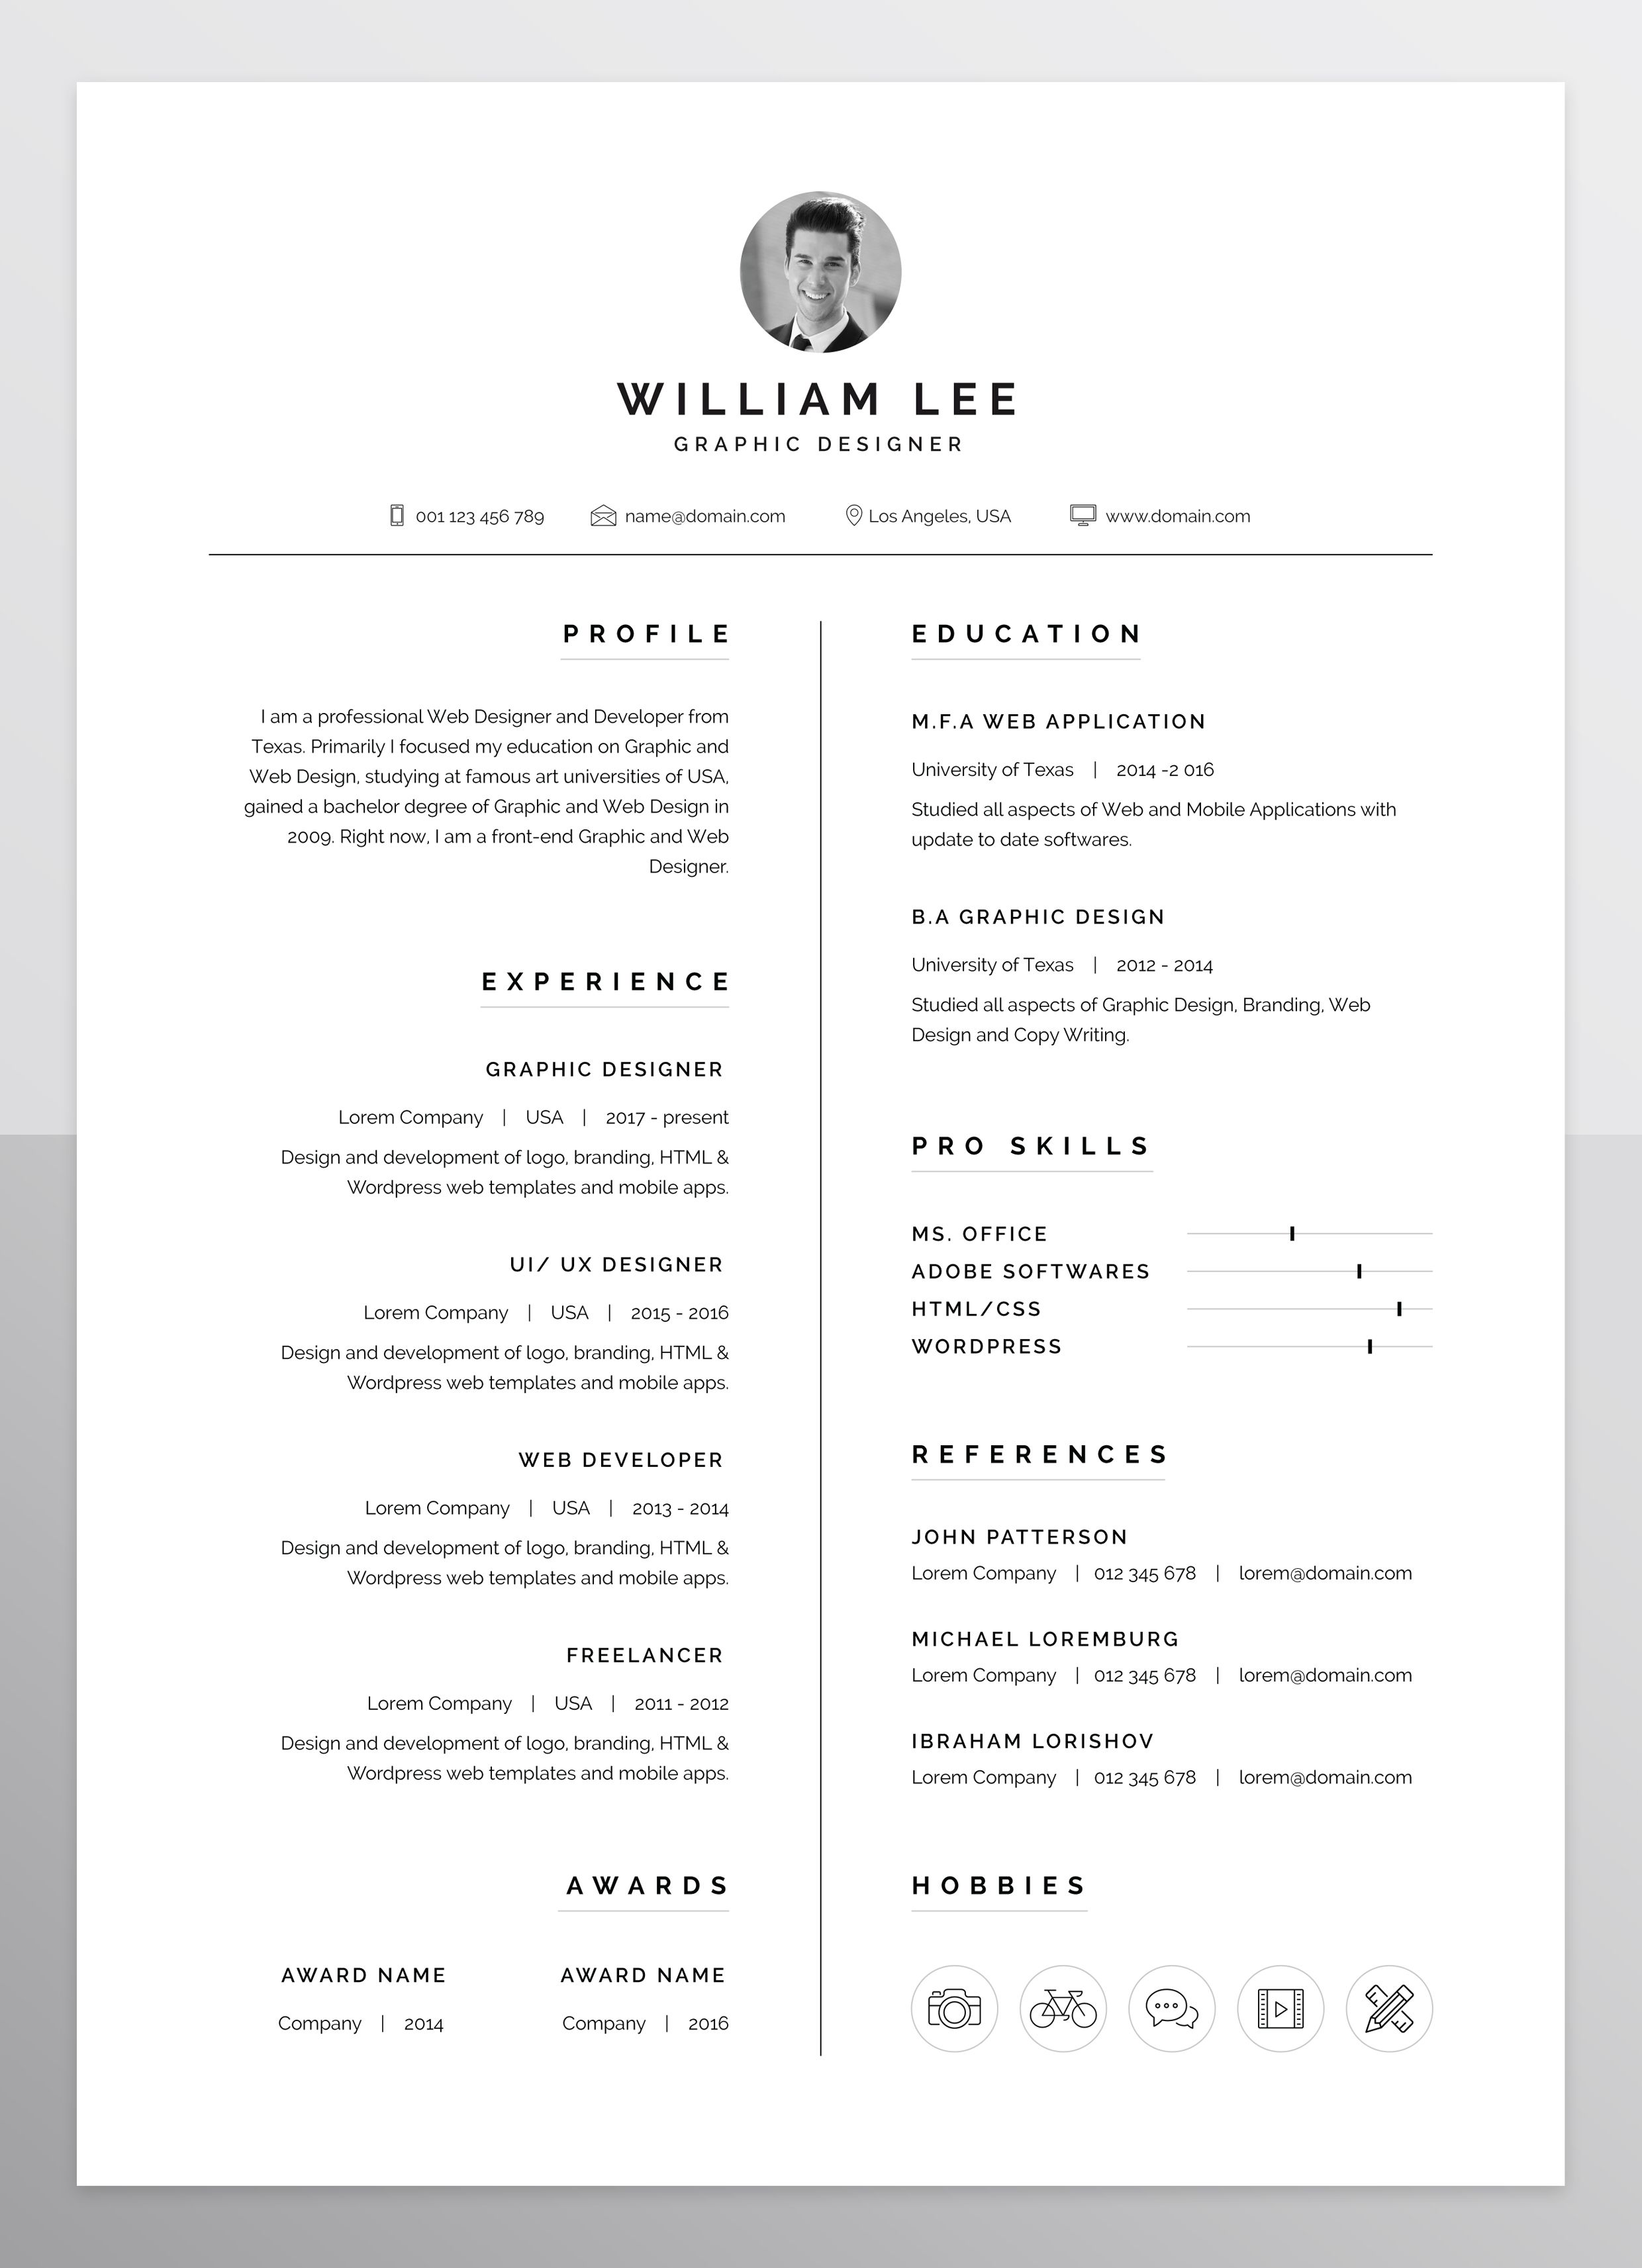 a simple, clean, minimal and professional design of Resume